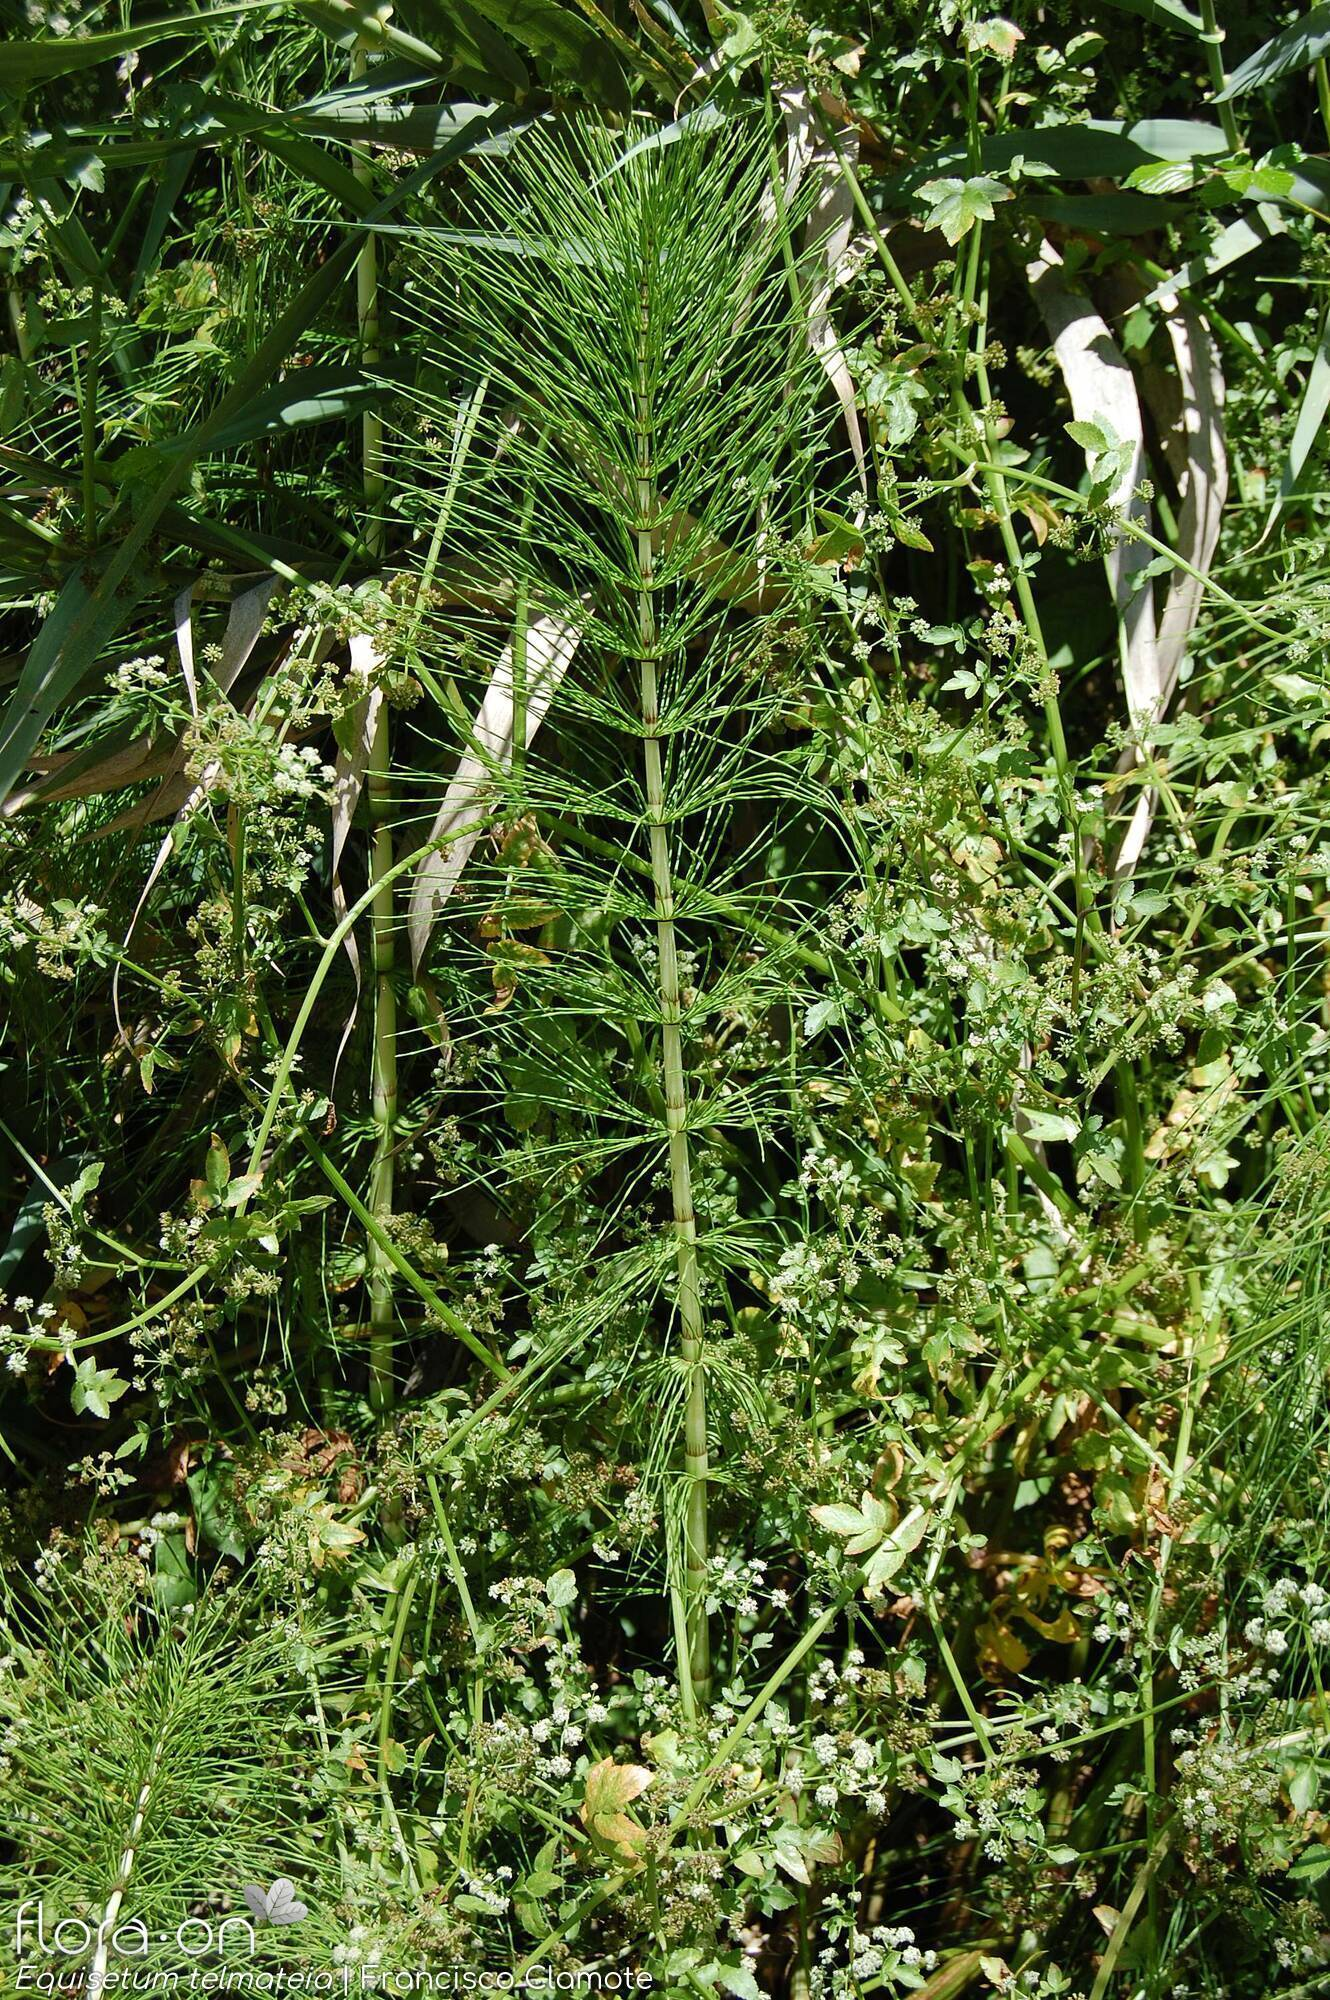 Equisetum telmateia - Hábito | Francisco Clamote; CC BY-NC 4.0